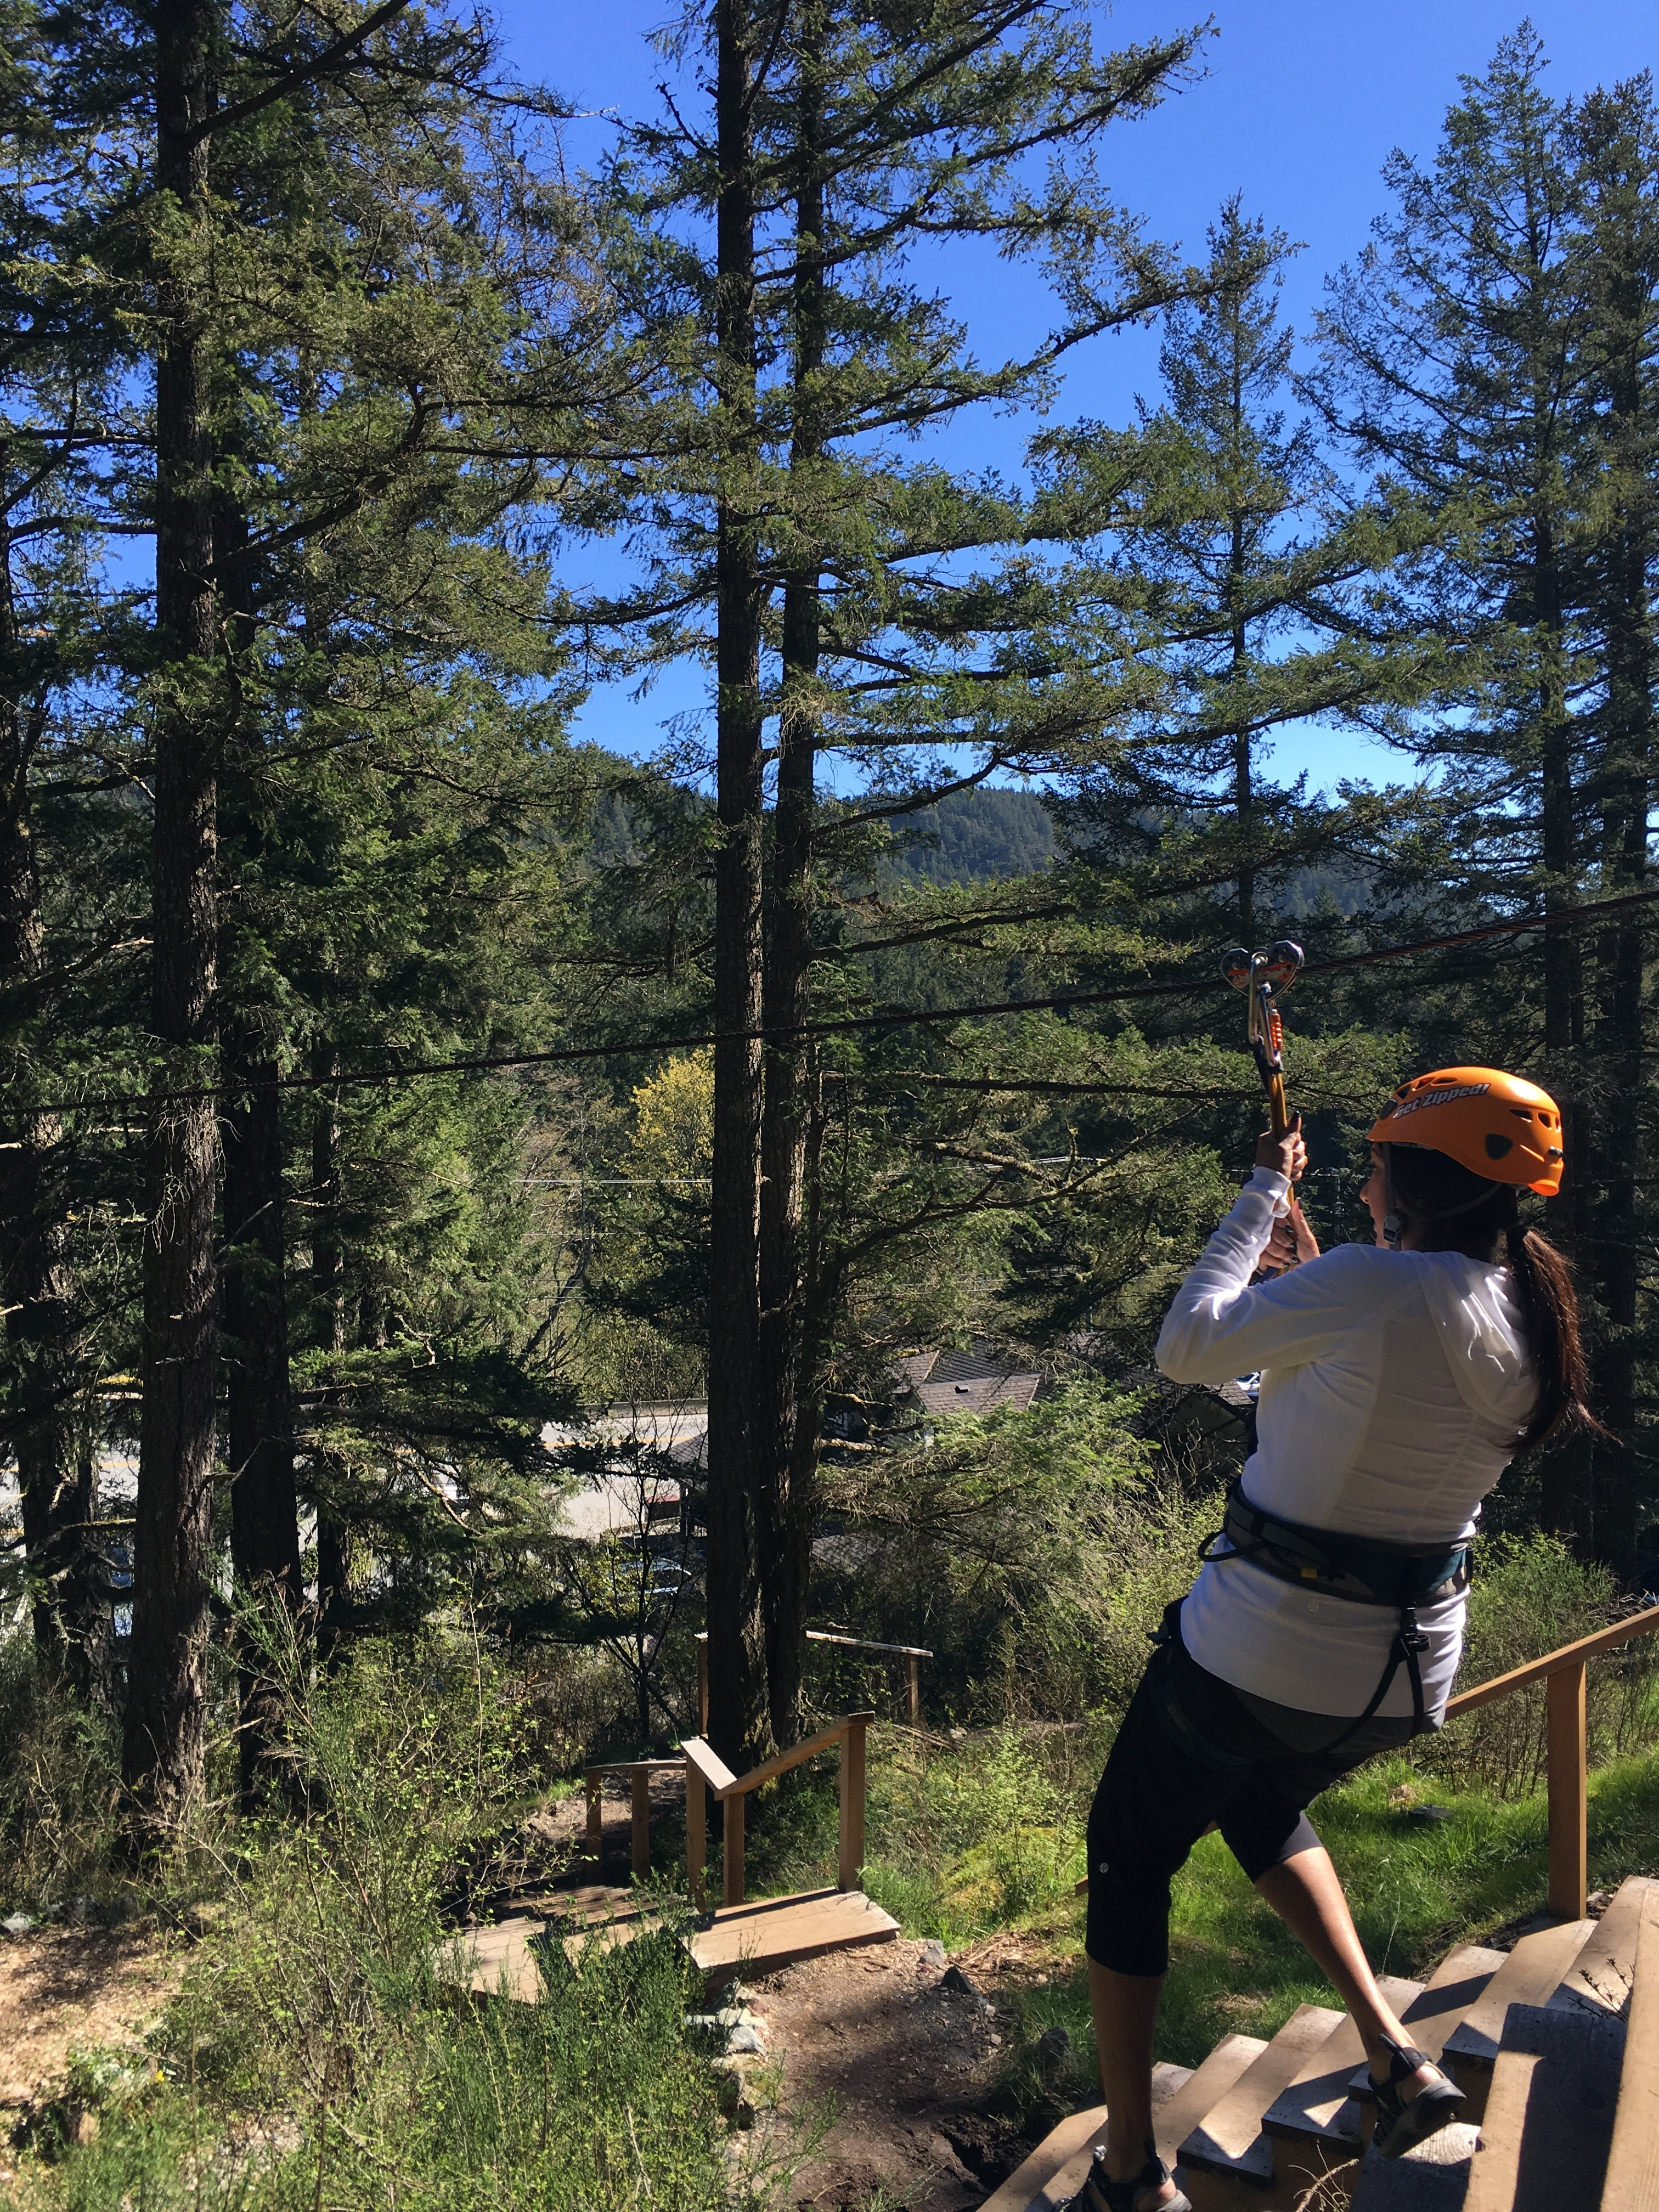 out of my comfort zone zip lining